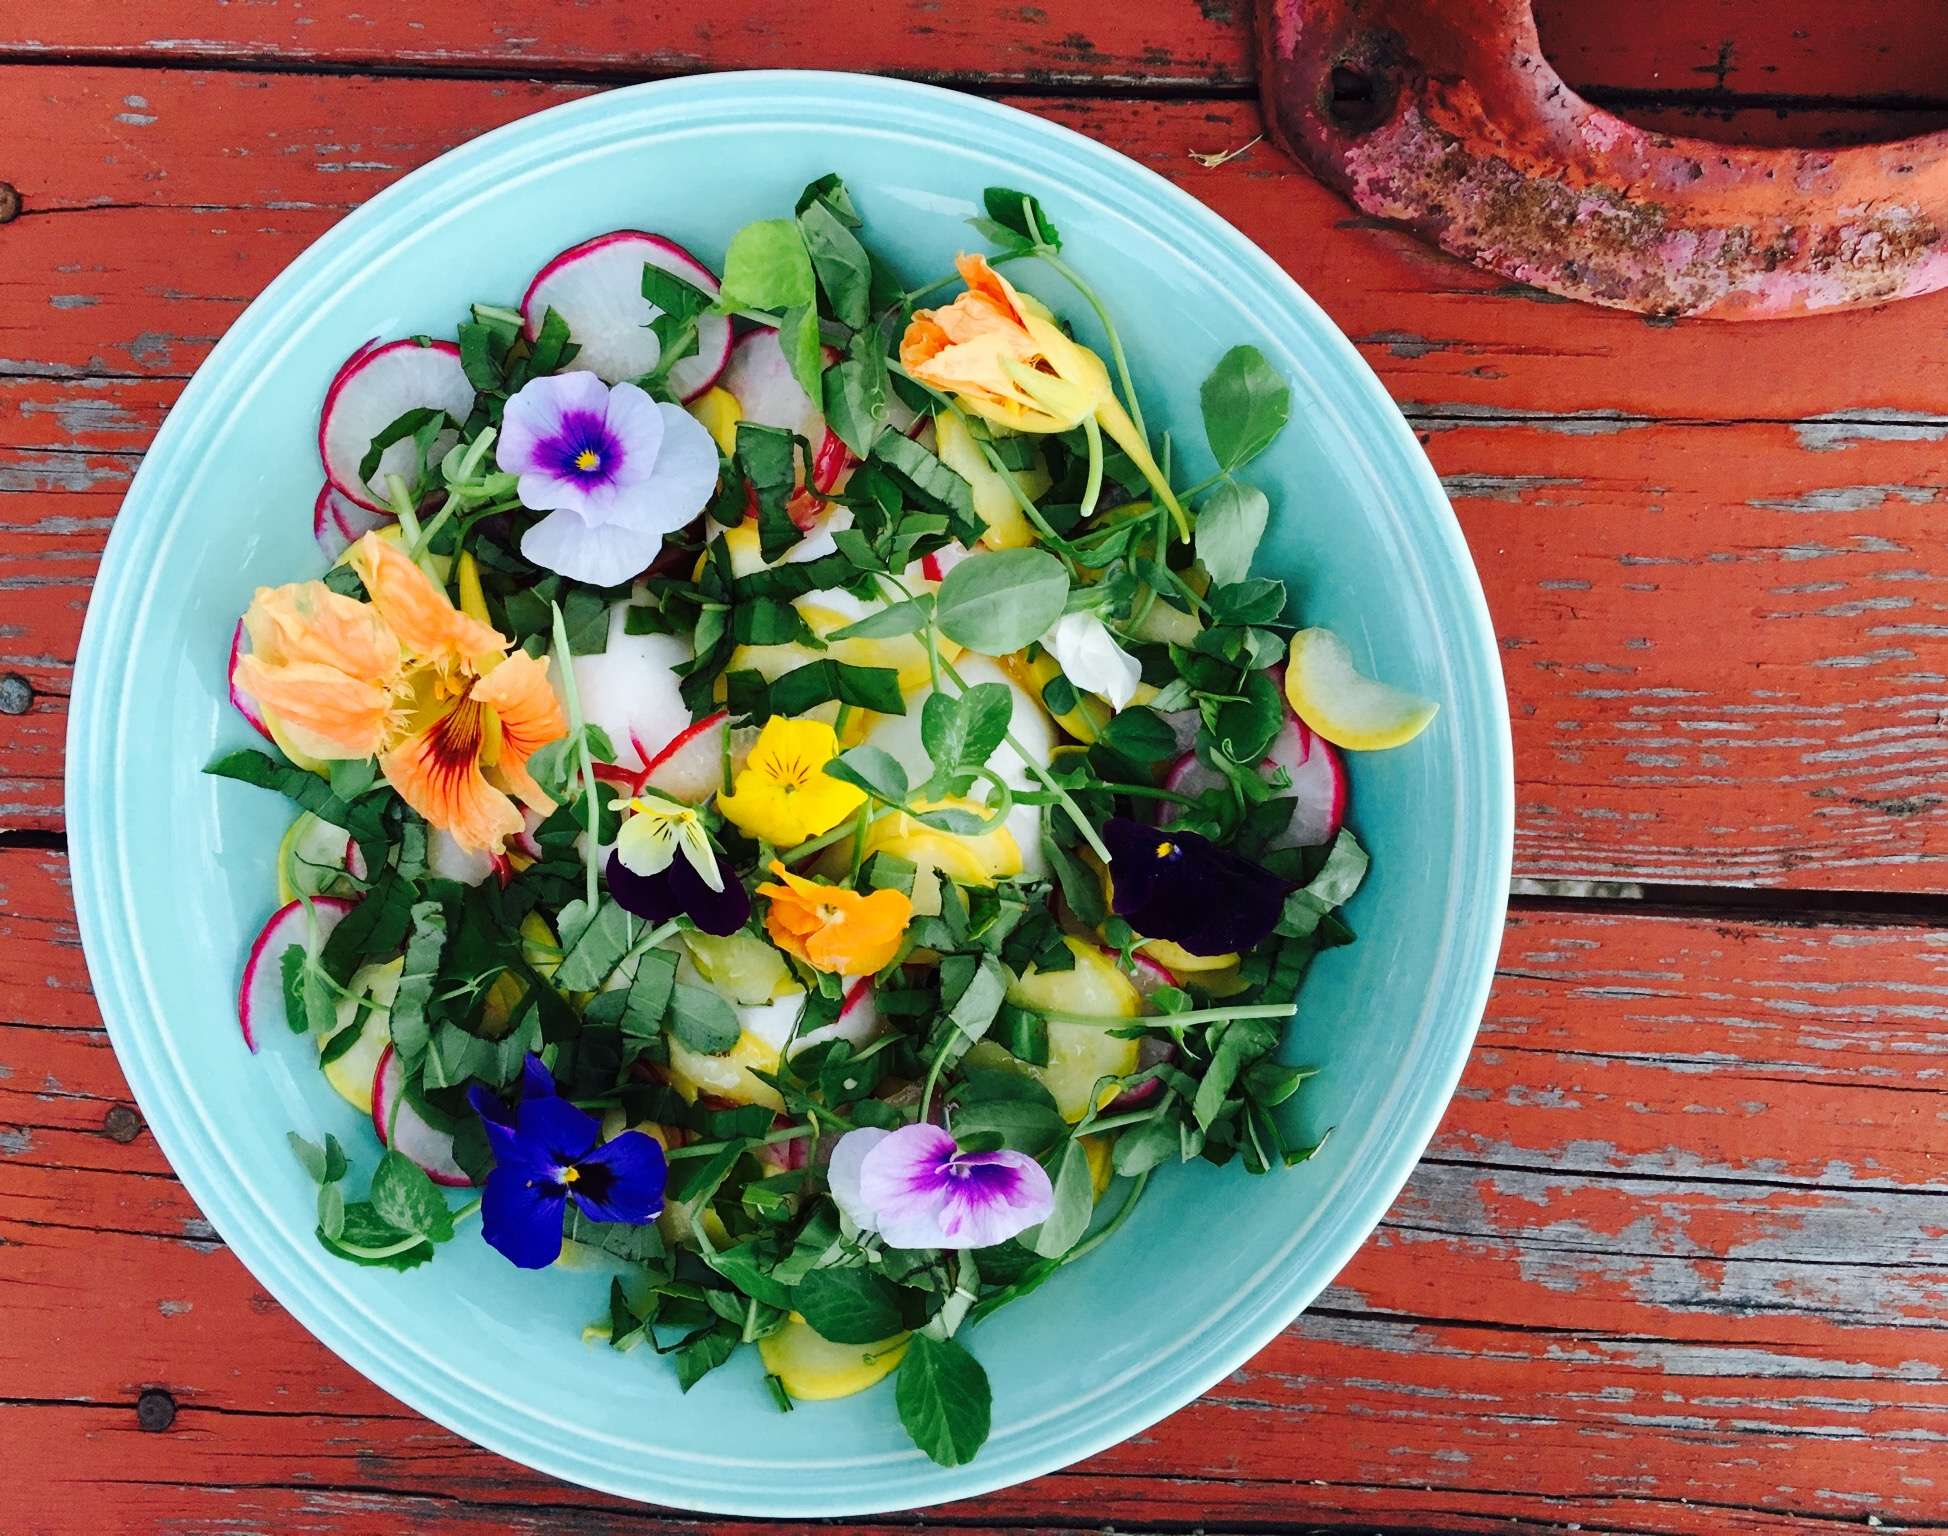 Burrata salad with edible flowers — The Vibrant Beet